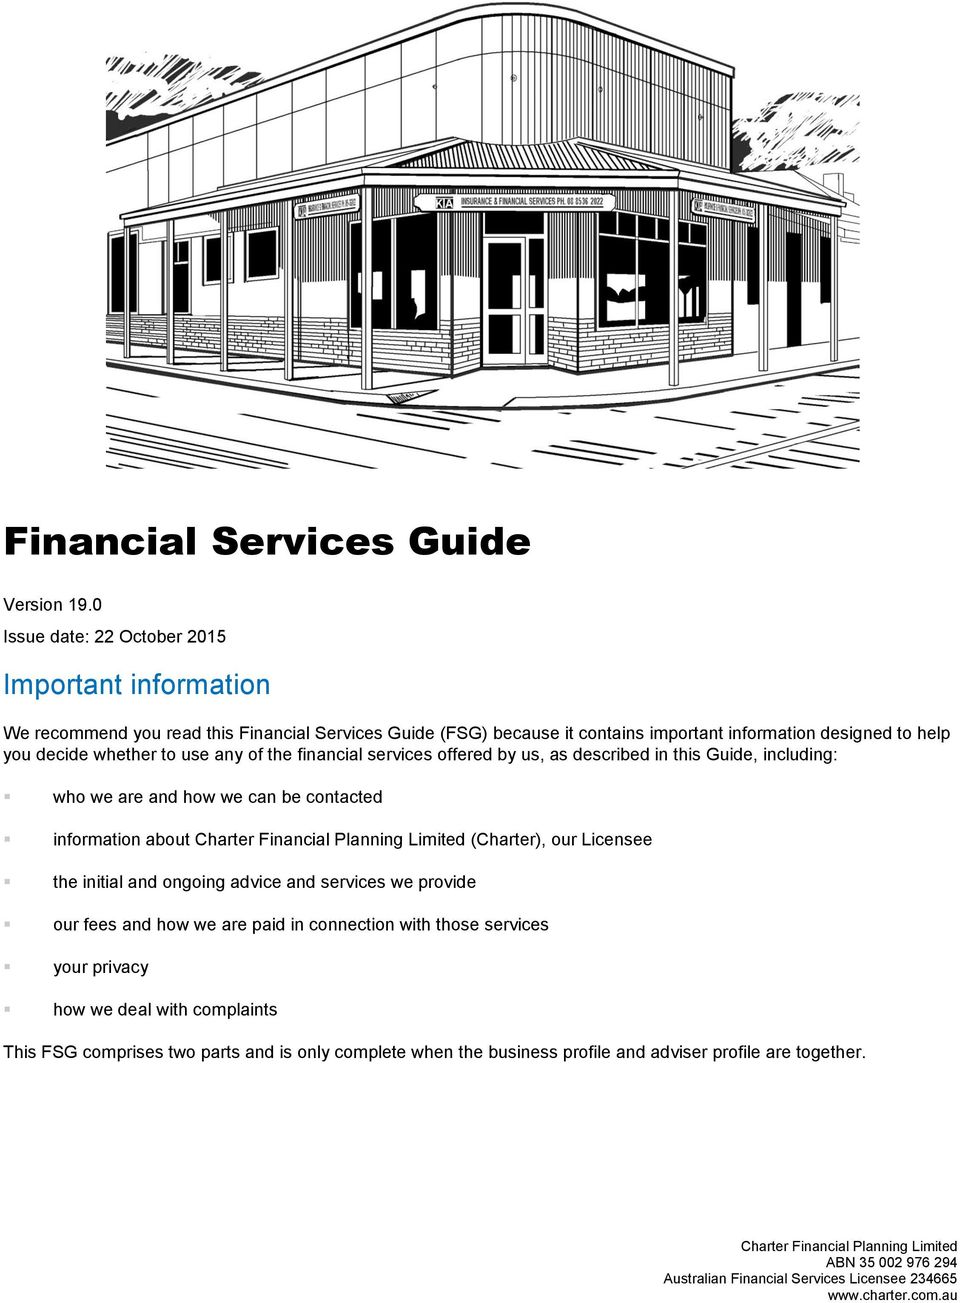 of the financial services offered by us, as described in this Guide, including: who we are and how we can be contacted information about Charter Financial Planning Limited (Charter), our Licensee the